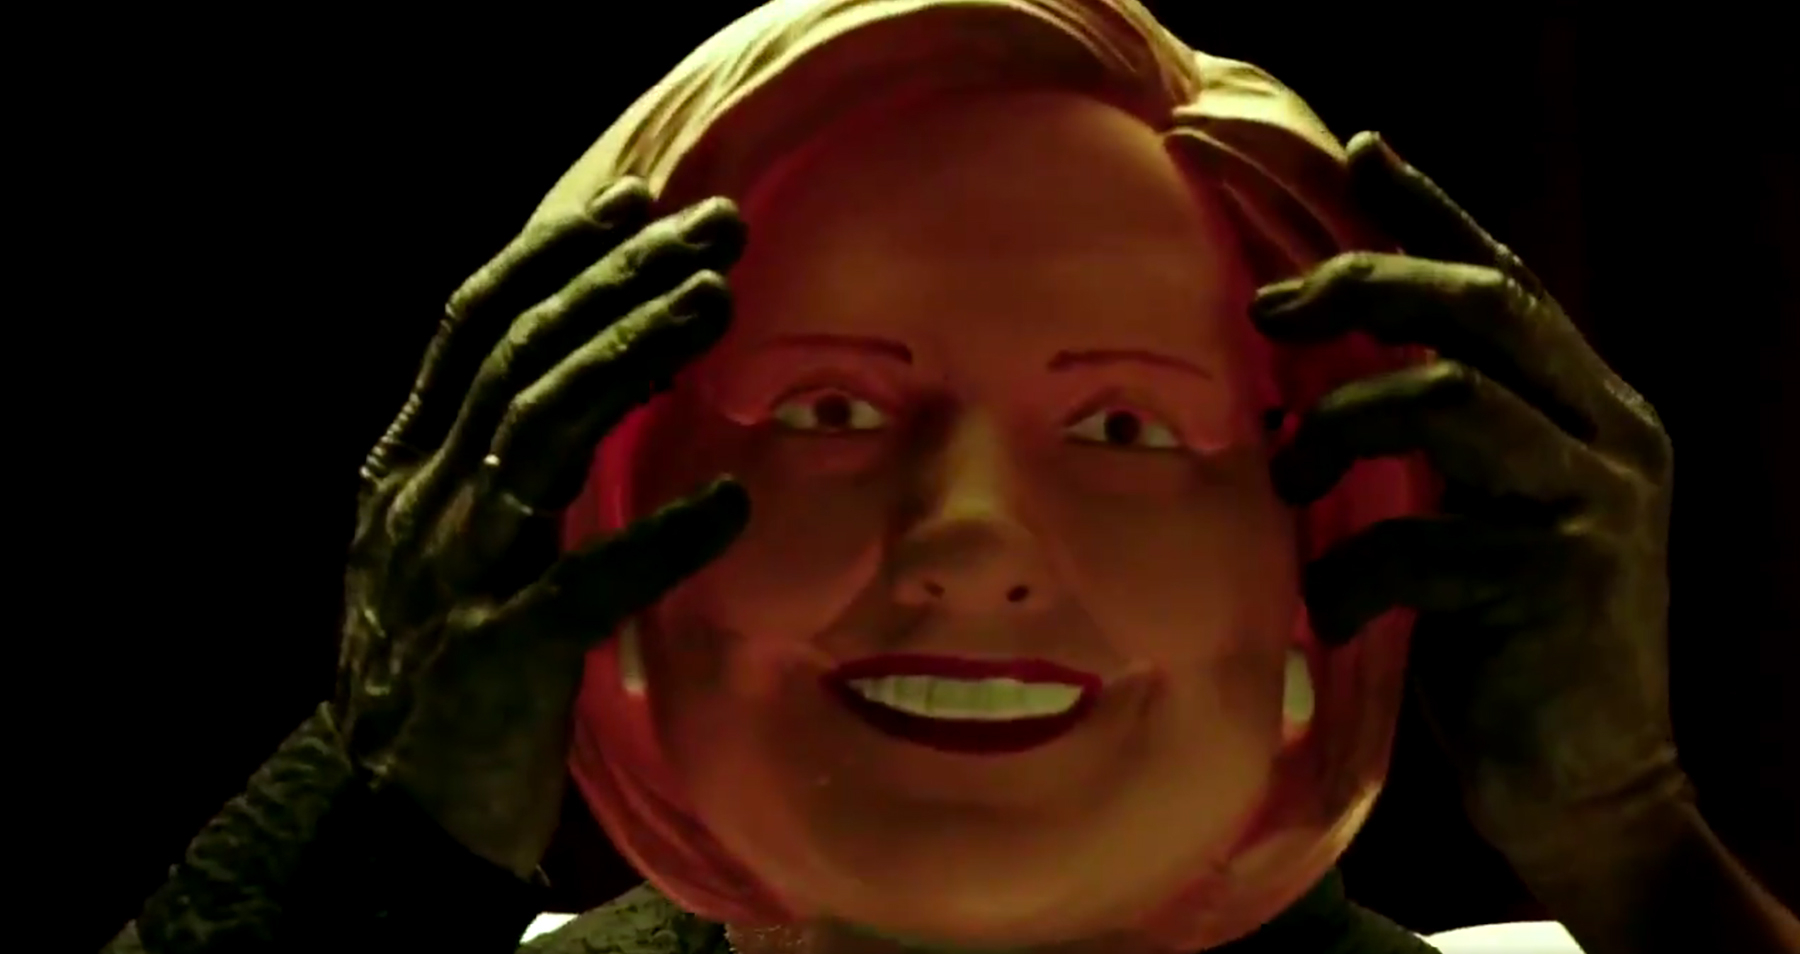 A Hillary Clinton mask appears in the American Horror Story: Cult's credits.